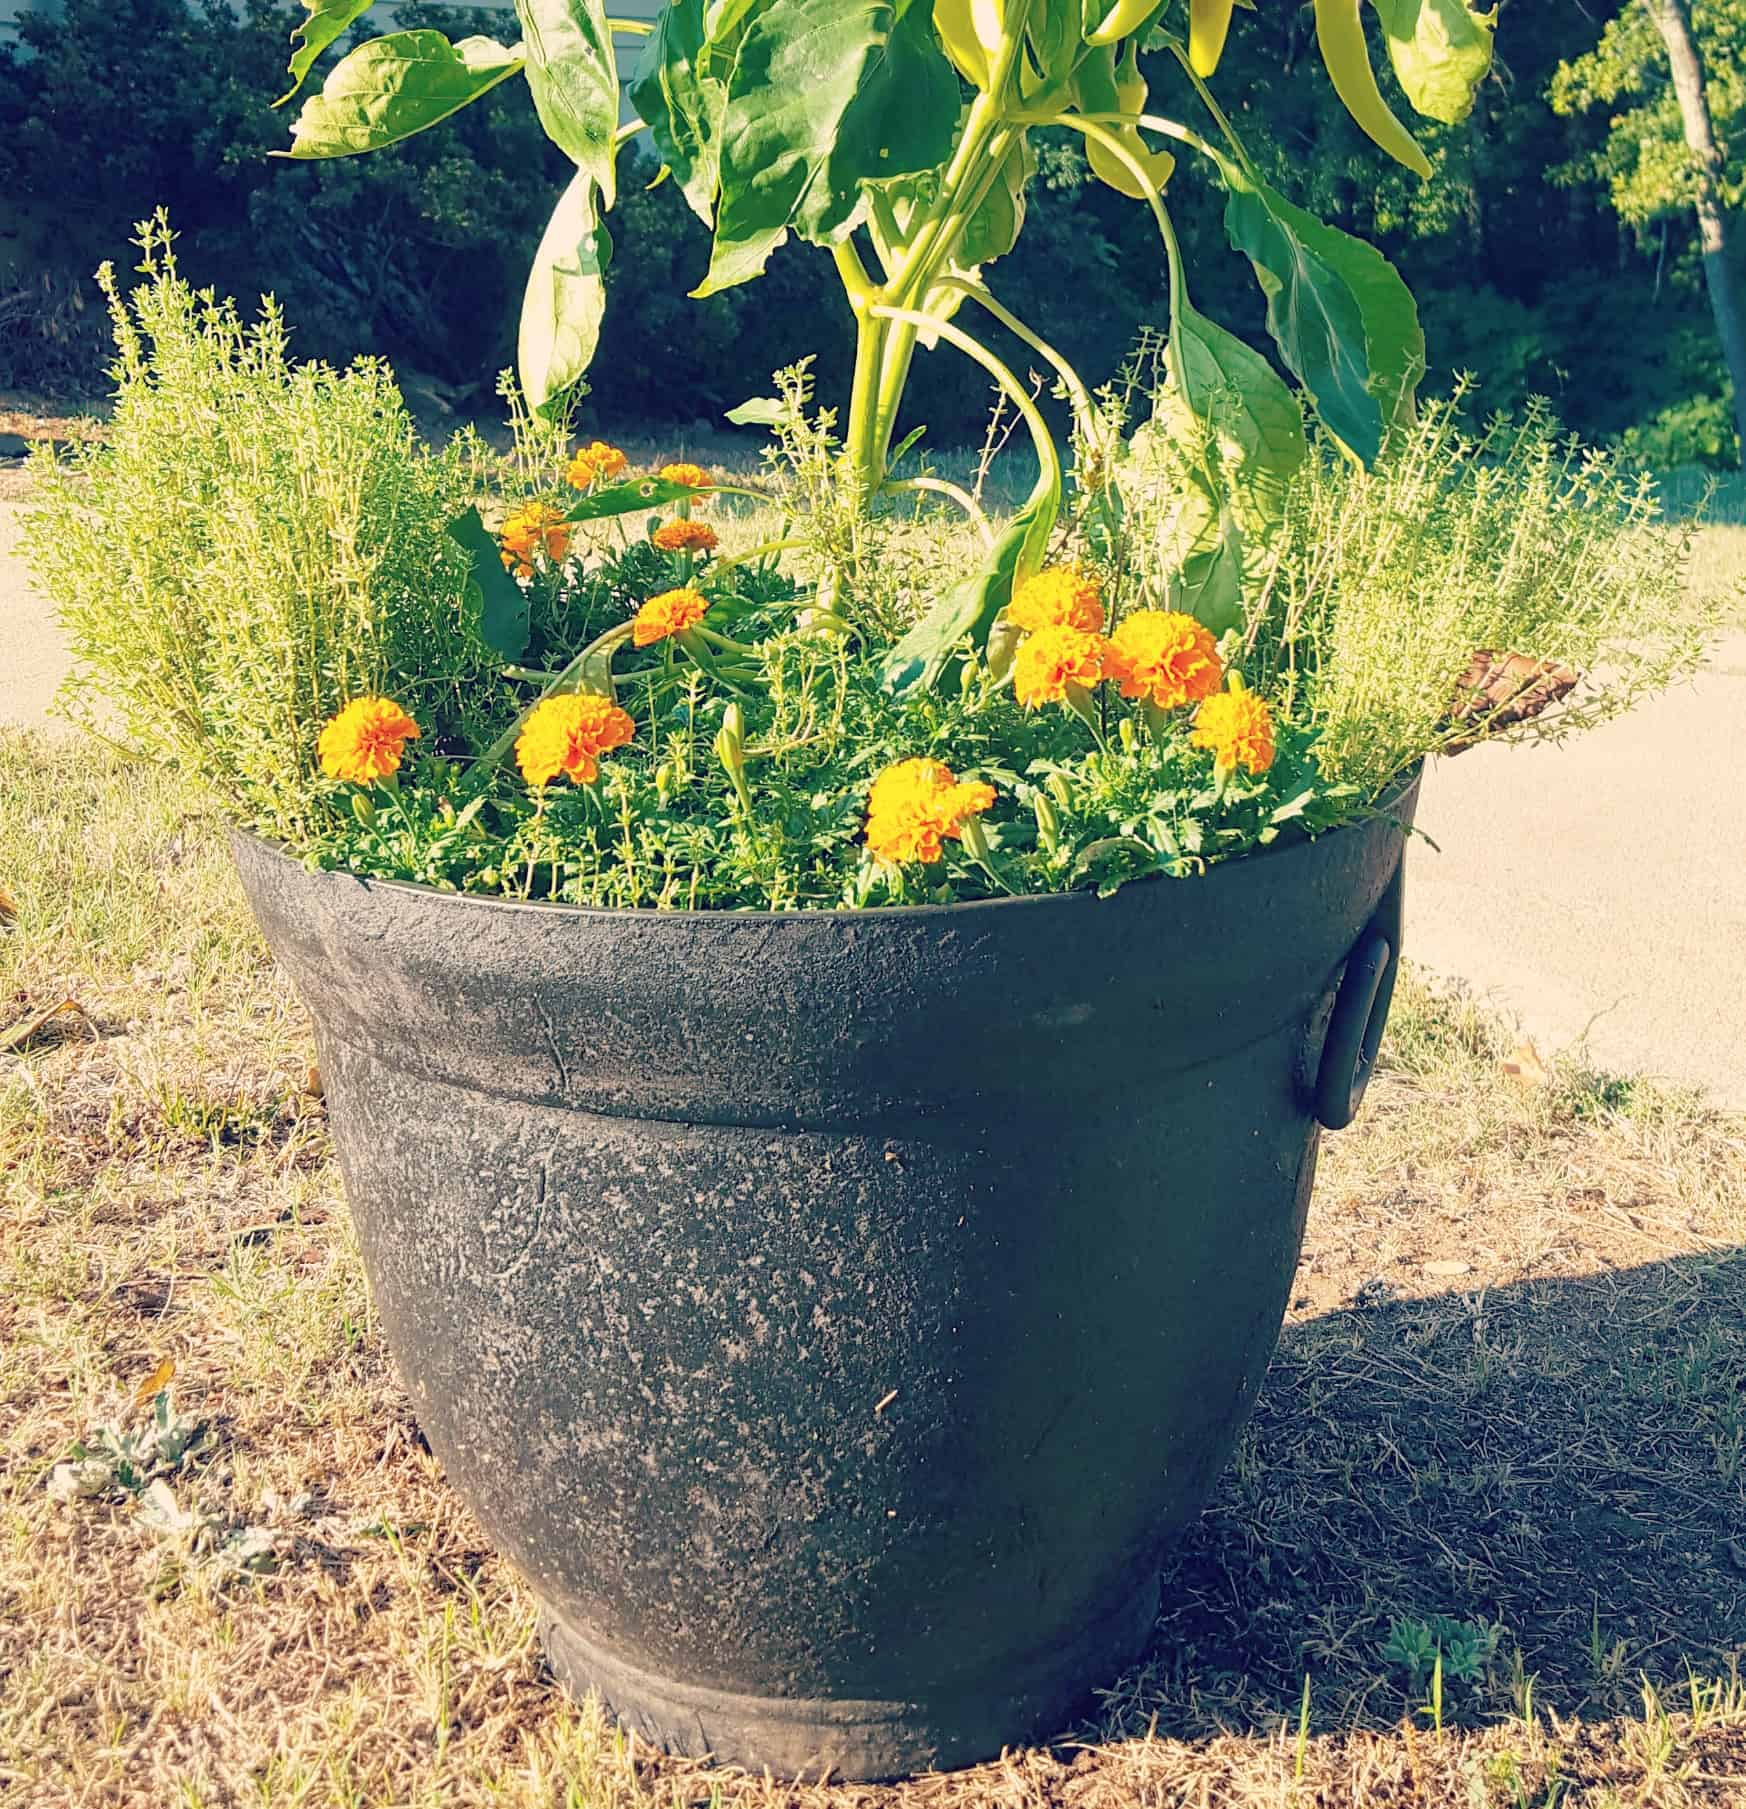 A 20 gallon planting container can grow a pepper plant plus herbs and flowers.